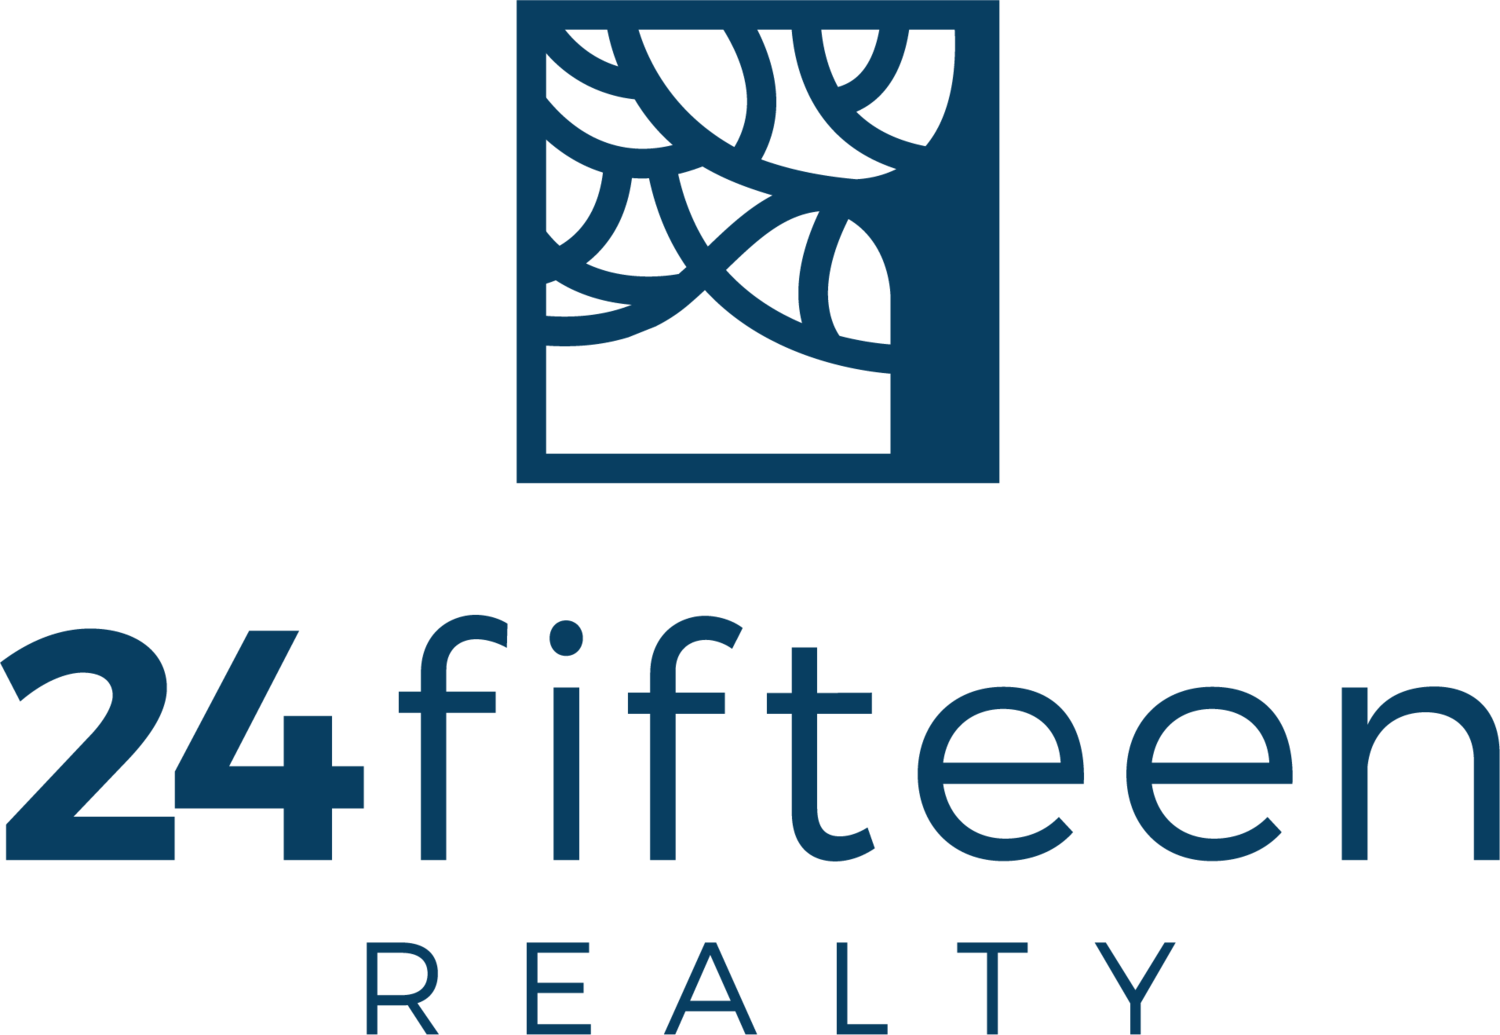 24:15 Realty - DFW Real Estate Team